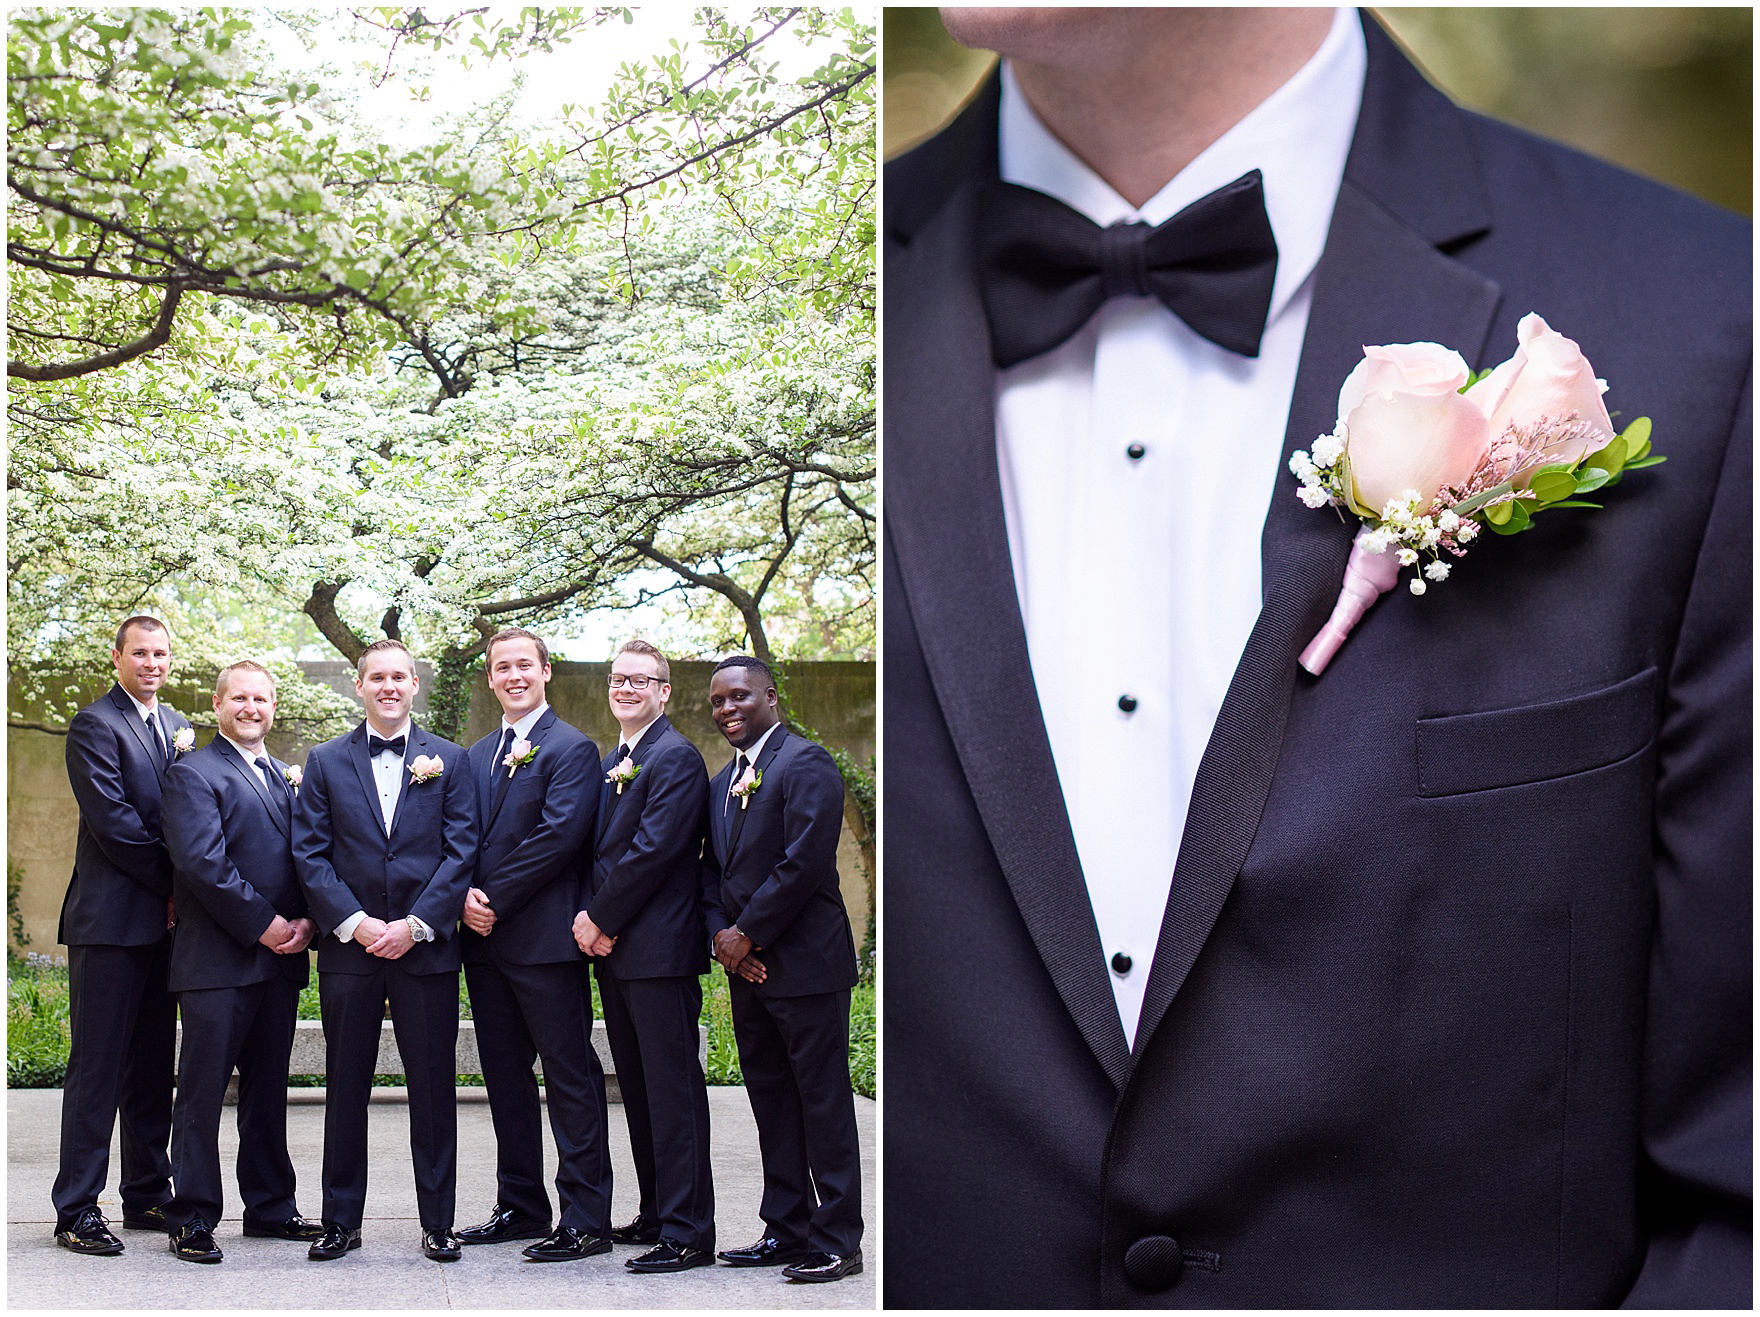 Groomsmen pose in the South Gardens of the Art Institute of Chicago before a University Club of Chicago wedding.